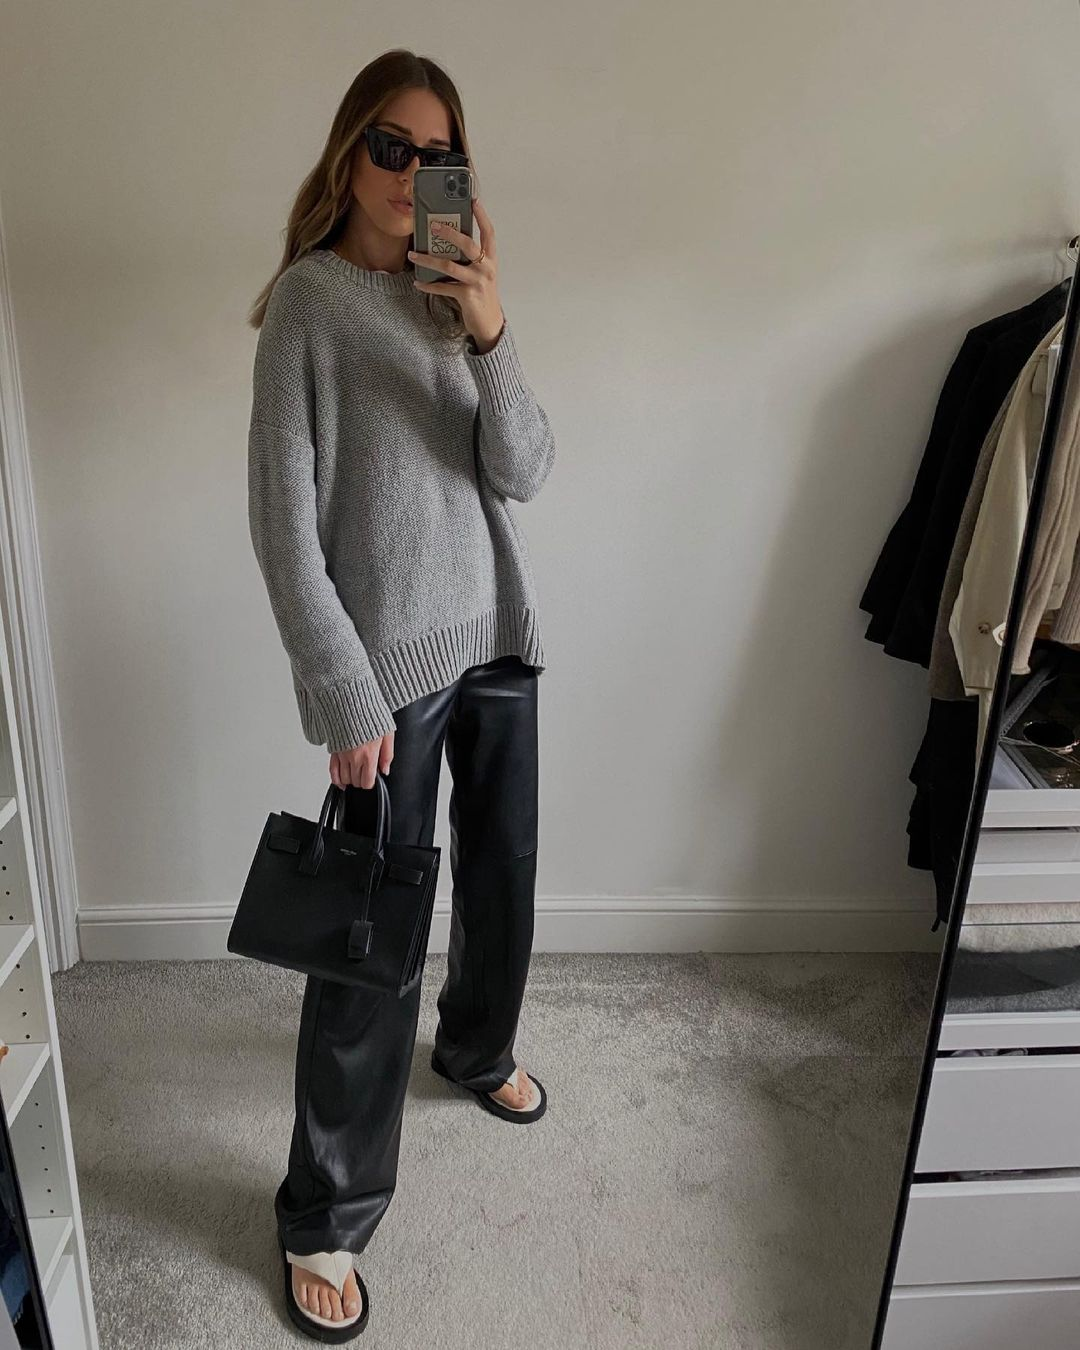 sophie-smith-cos-relaxed-knitted-jumper-instagram